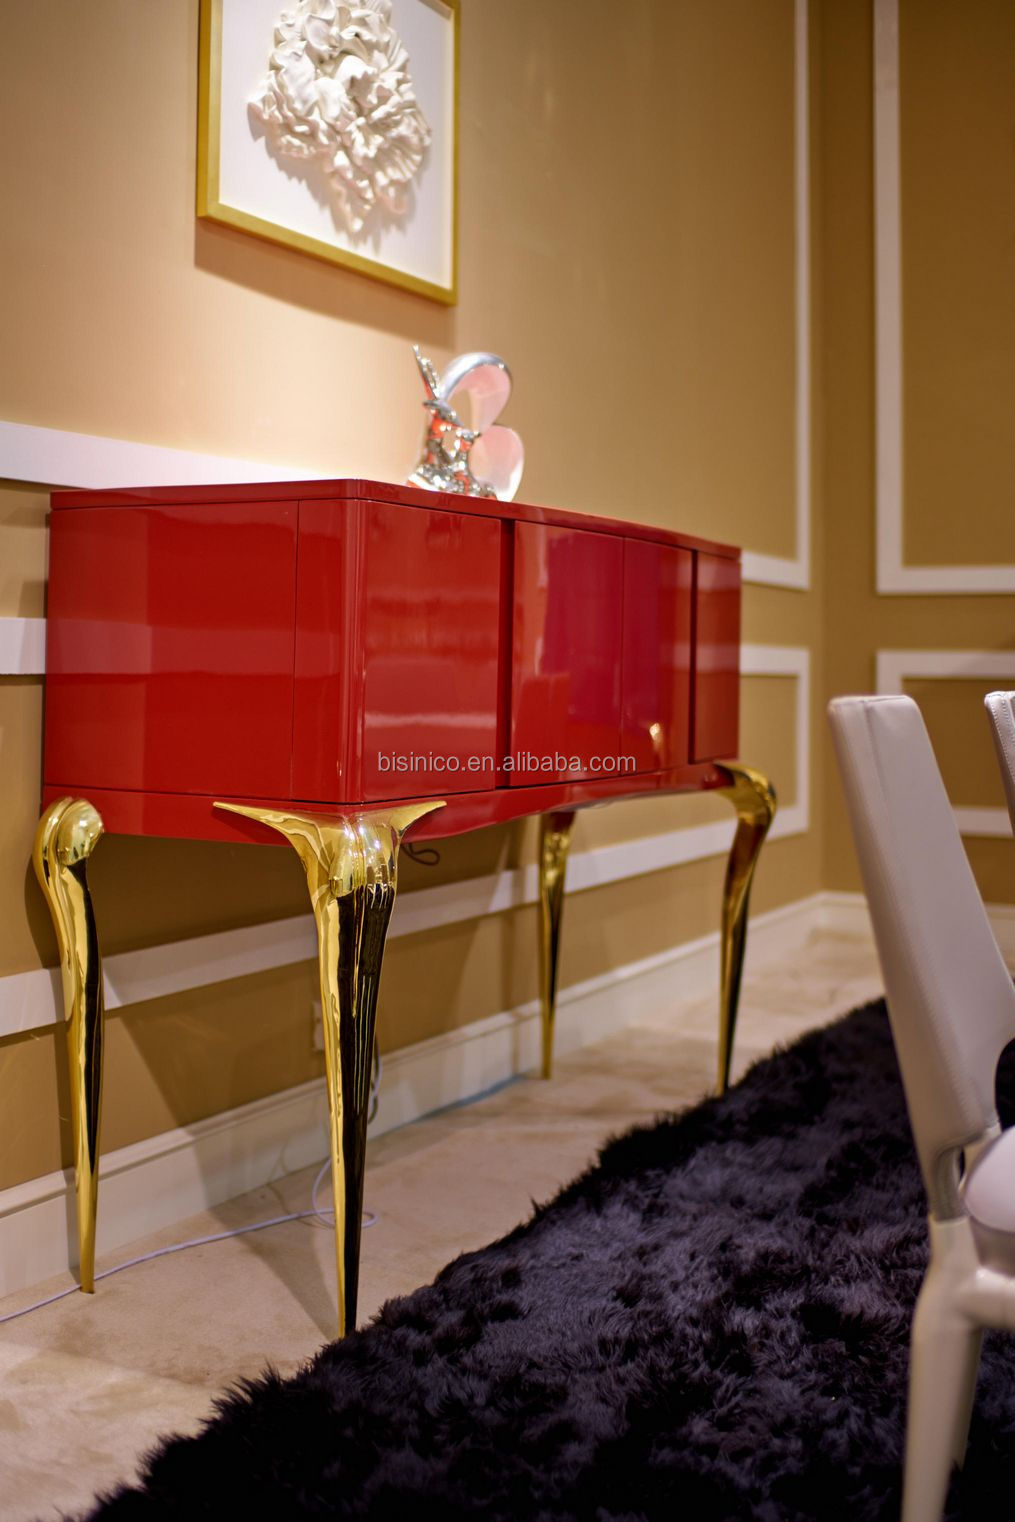 Latest Italian Style Red and Gold Dining Room Cupboard, Excellent Design Creative and Elegant Sideboard